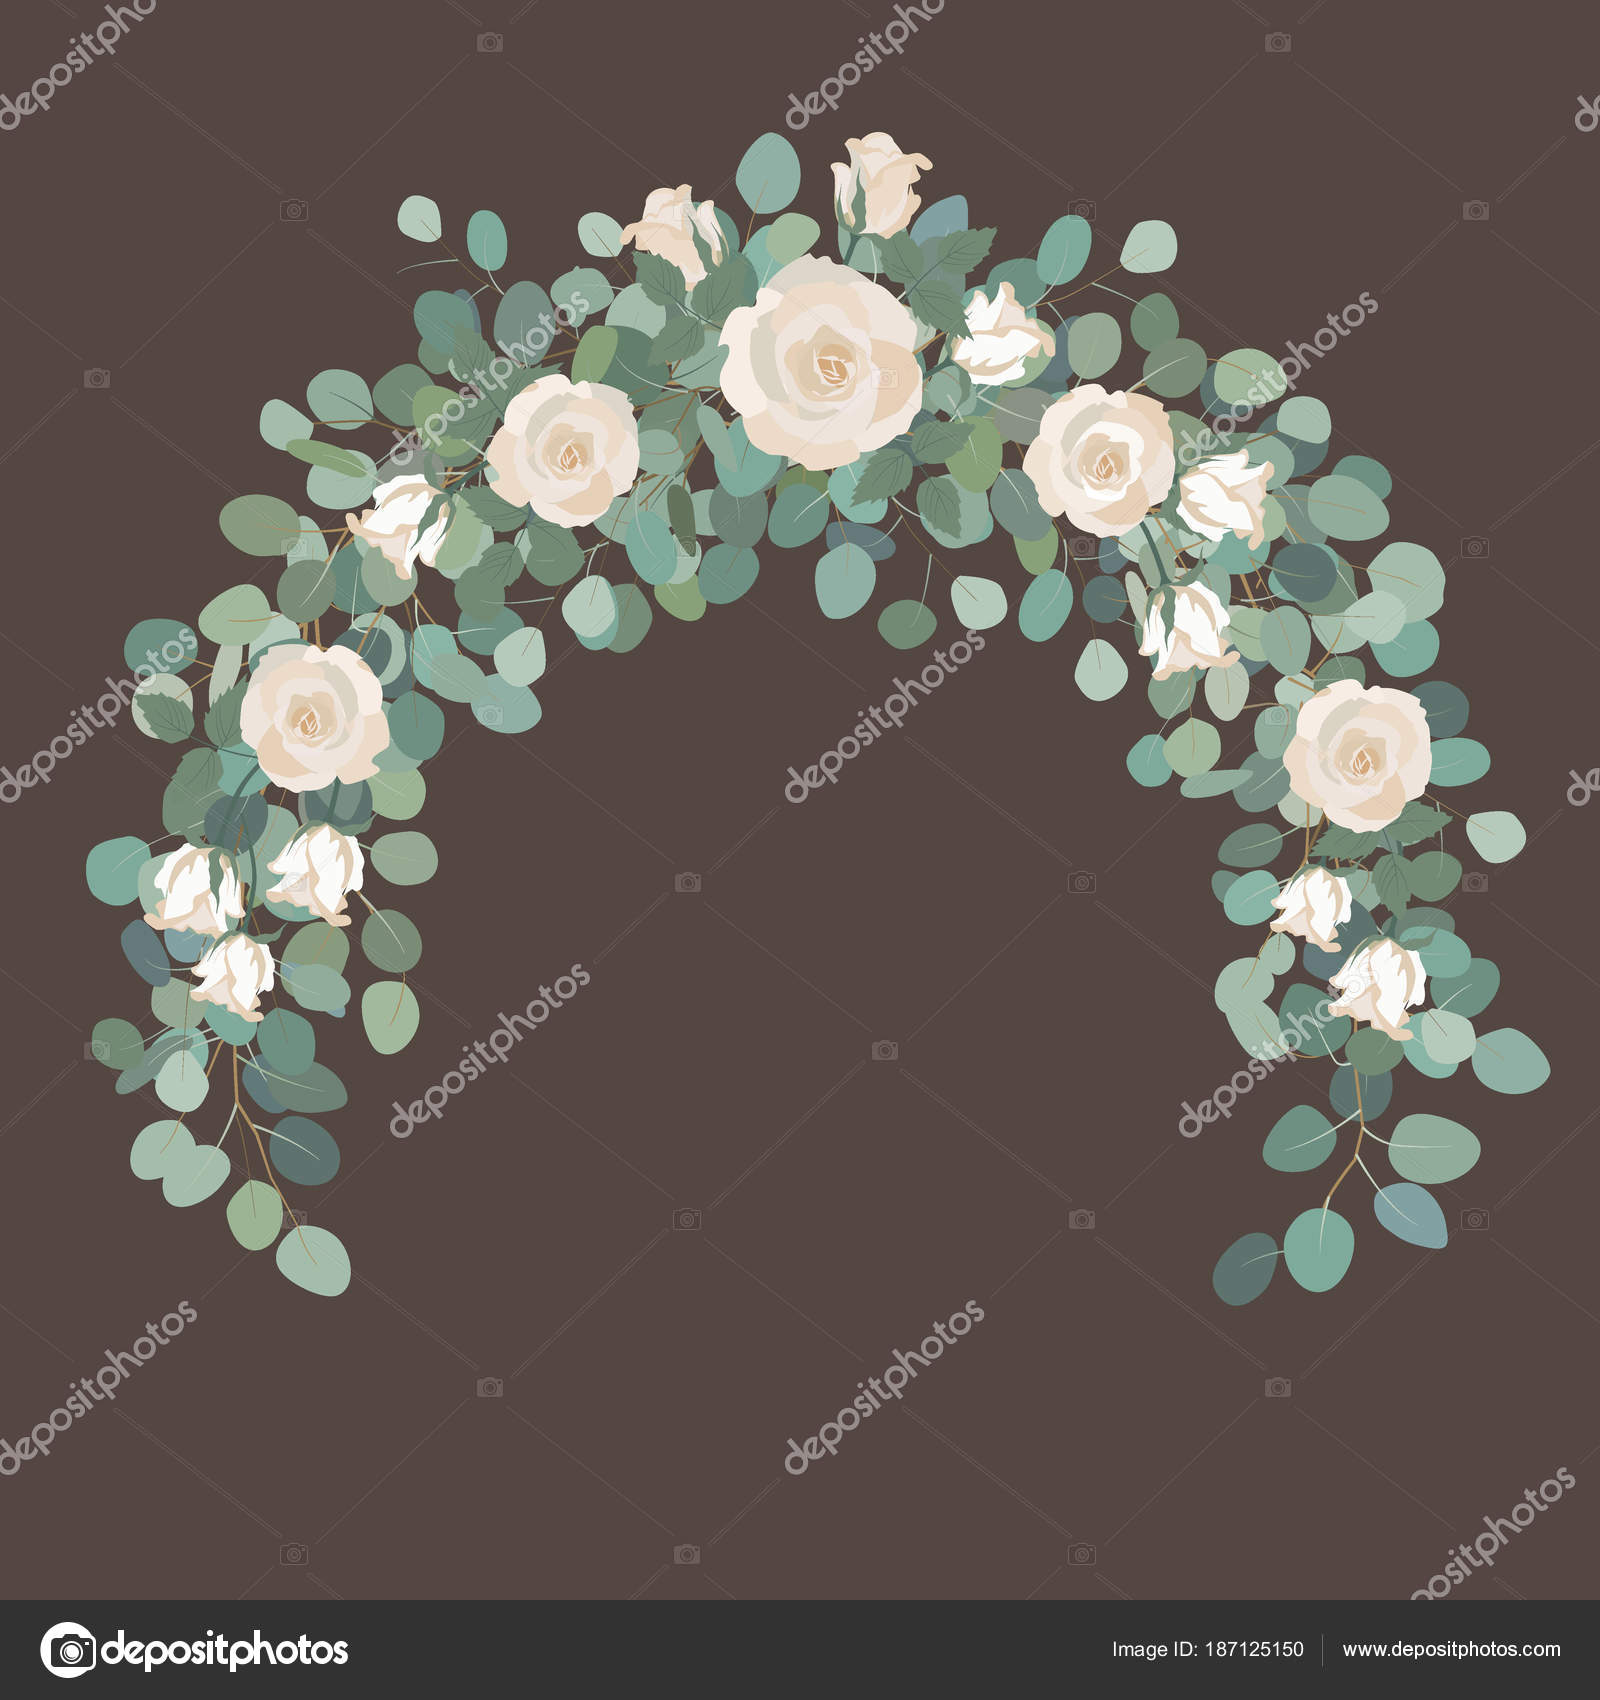 White Rose Flowers And Silver Dollar Eucalyptus Garland Round